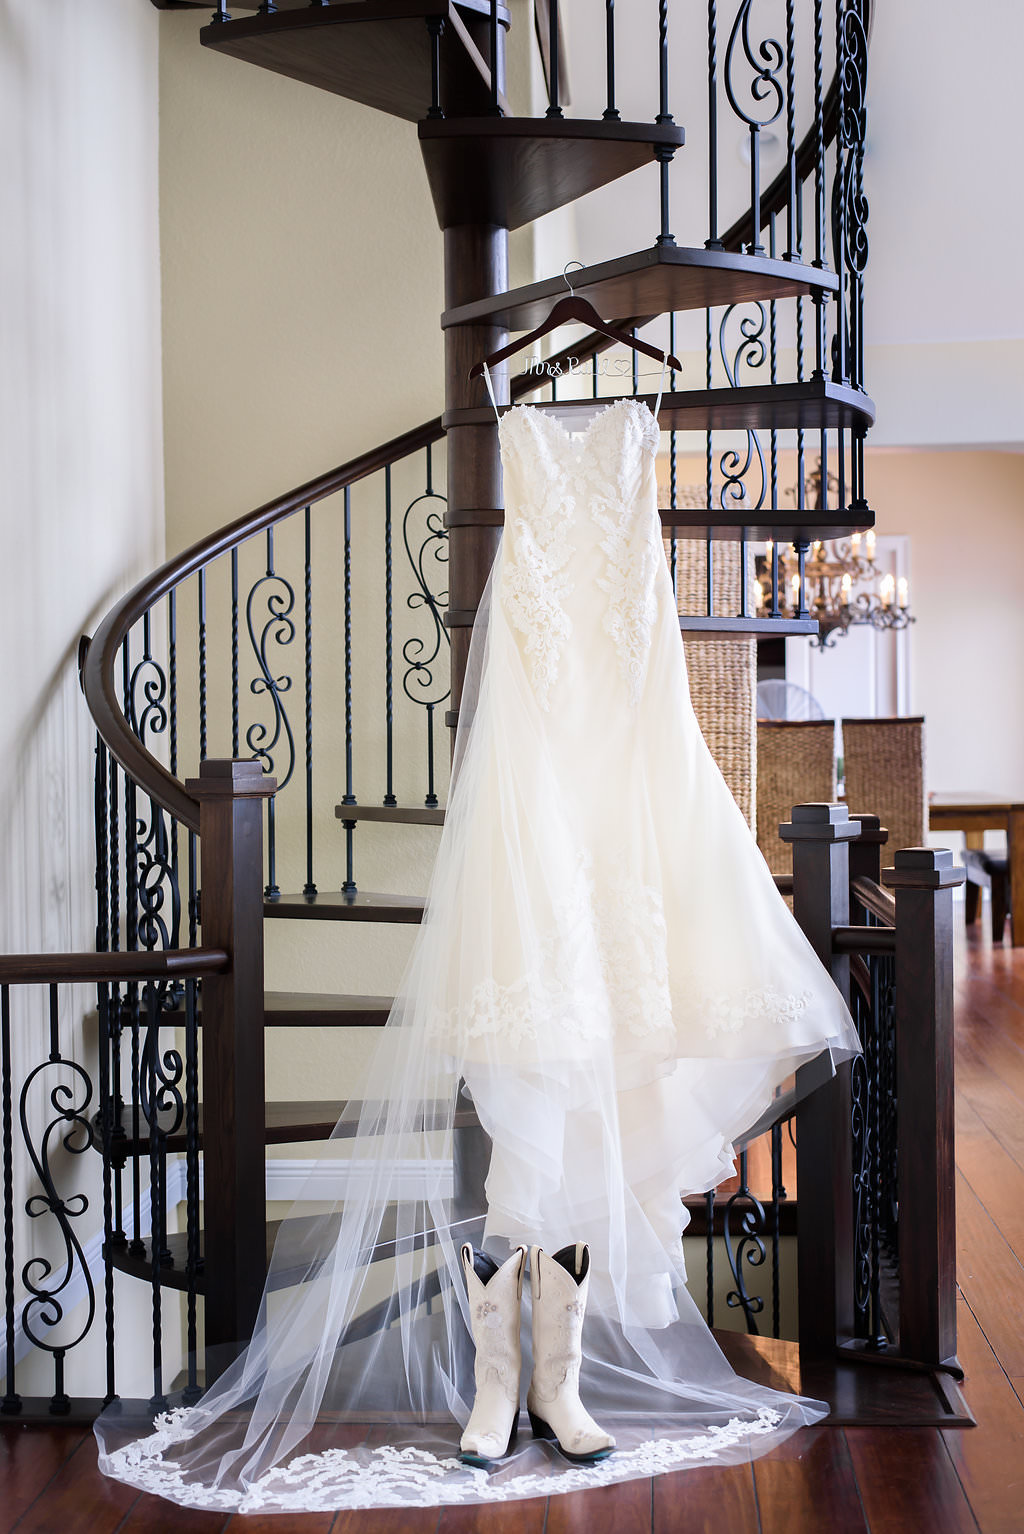 Strapless Sweetheart A Line Ines Di Santo Wedding Dress on Custom Hanger with White with Dusty Rose Embroidery Cowboy Boots Wedding Shoes